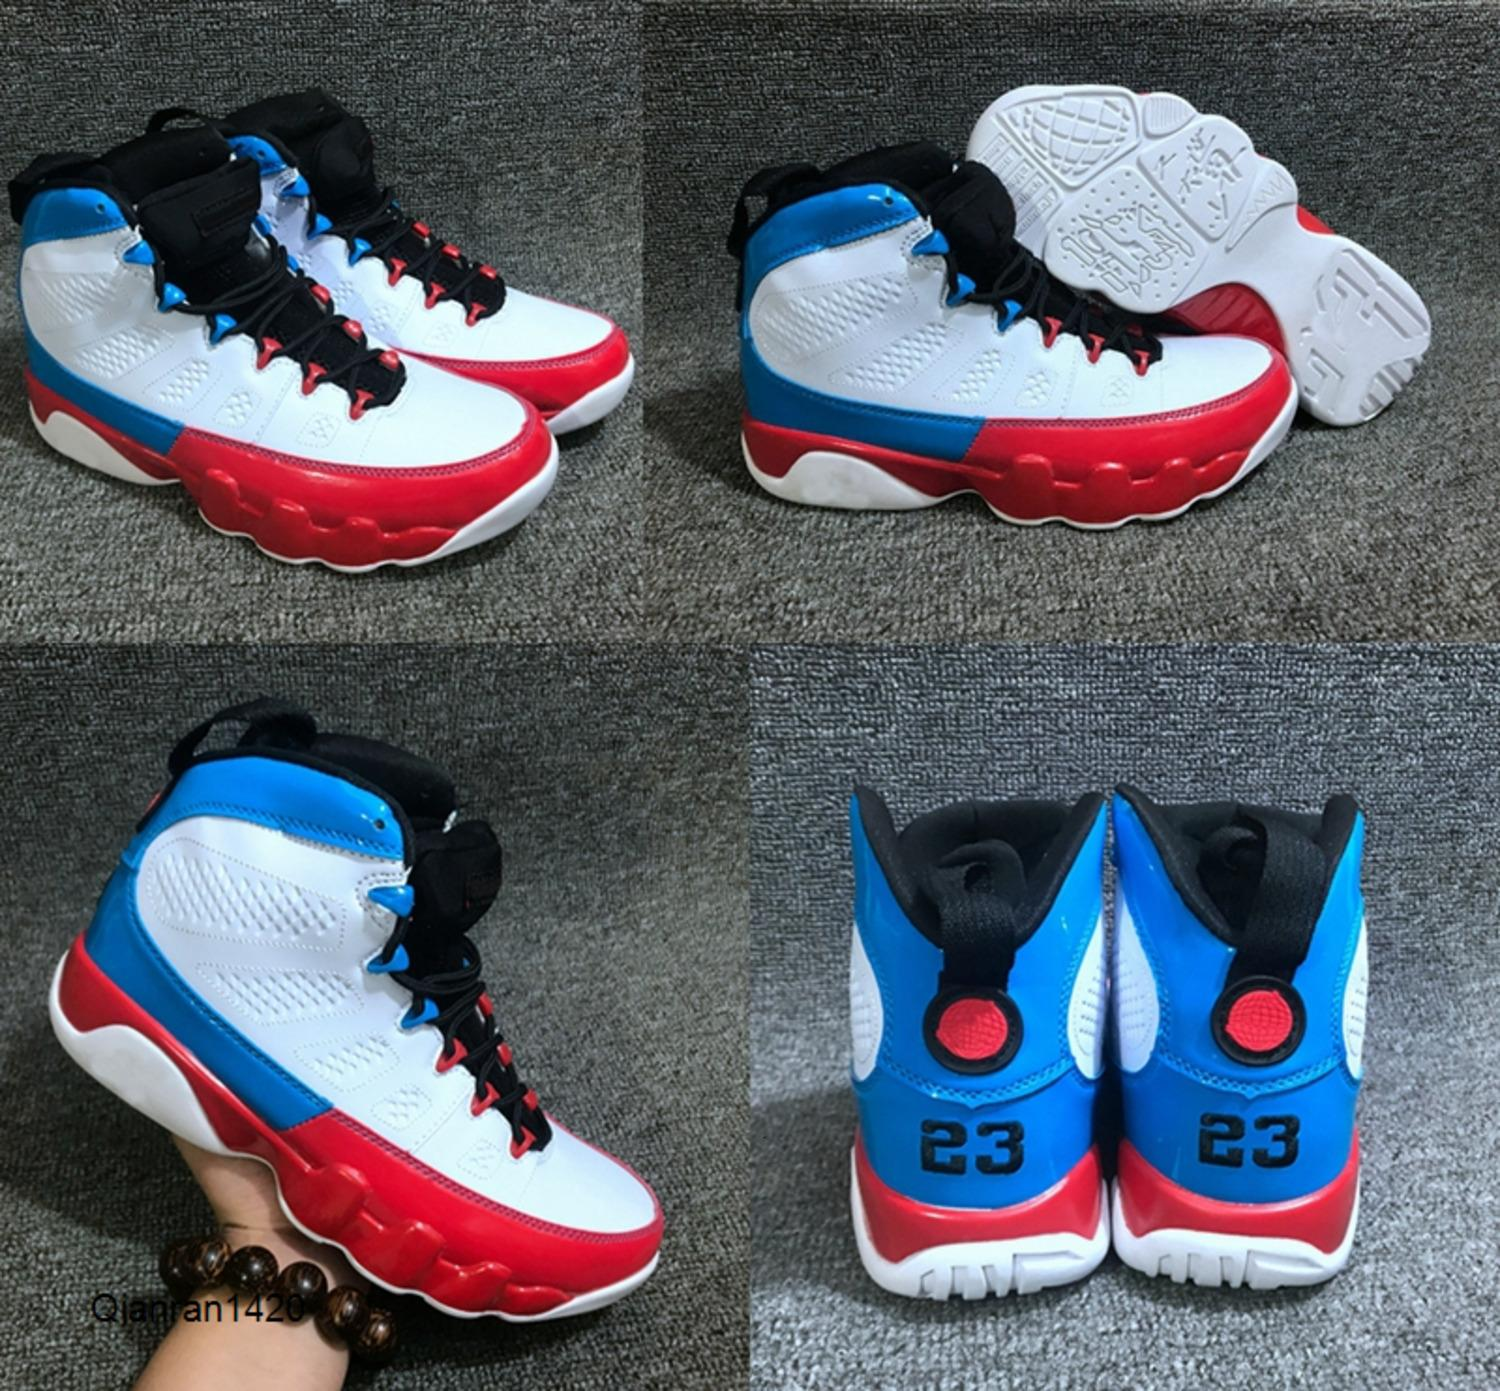 9 Gym Red Racer Bleu Bred Dream It Do It UNC Space Jam Caméléon Basketball Chaussures Hommes 9s Anthracite Jumpman Sport Sneakers